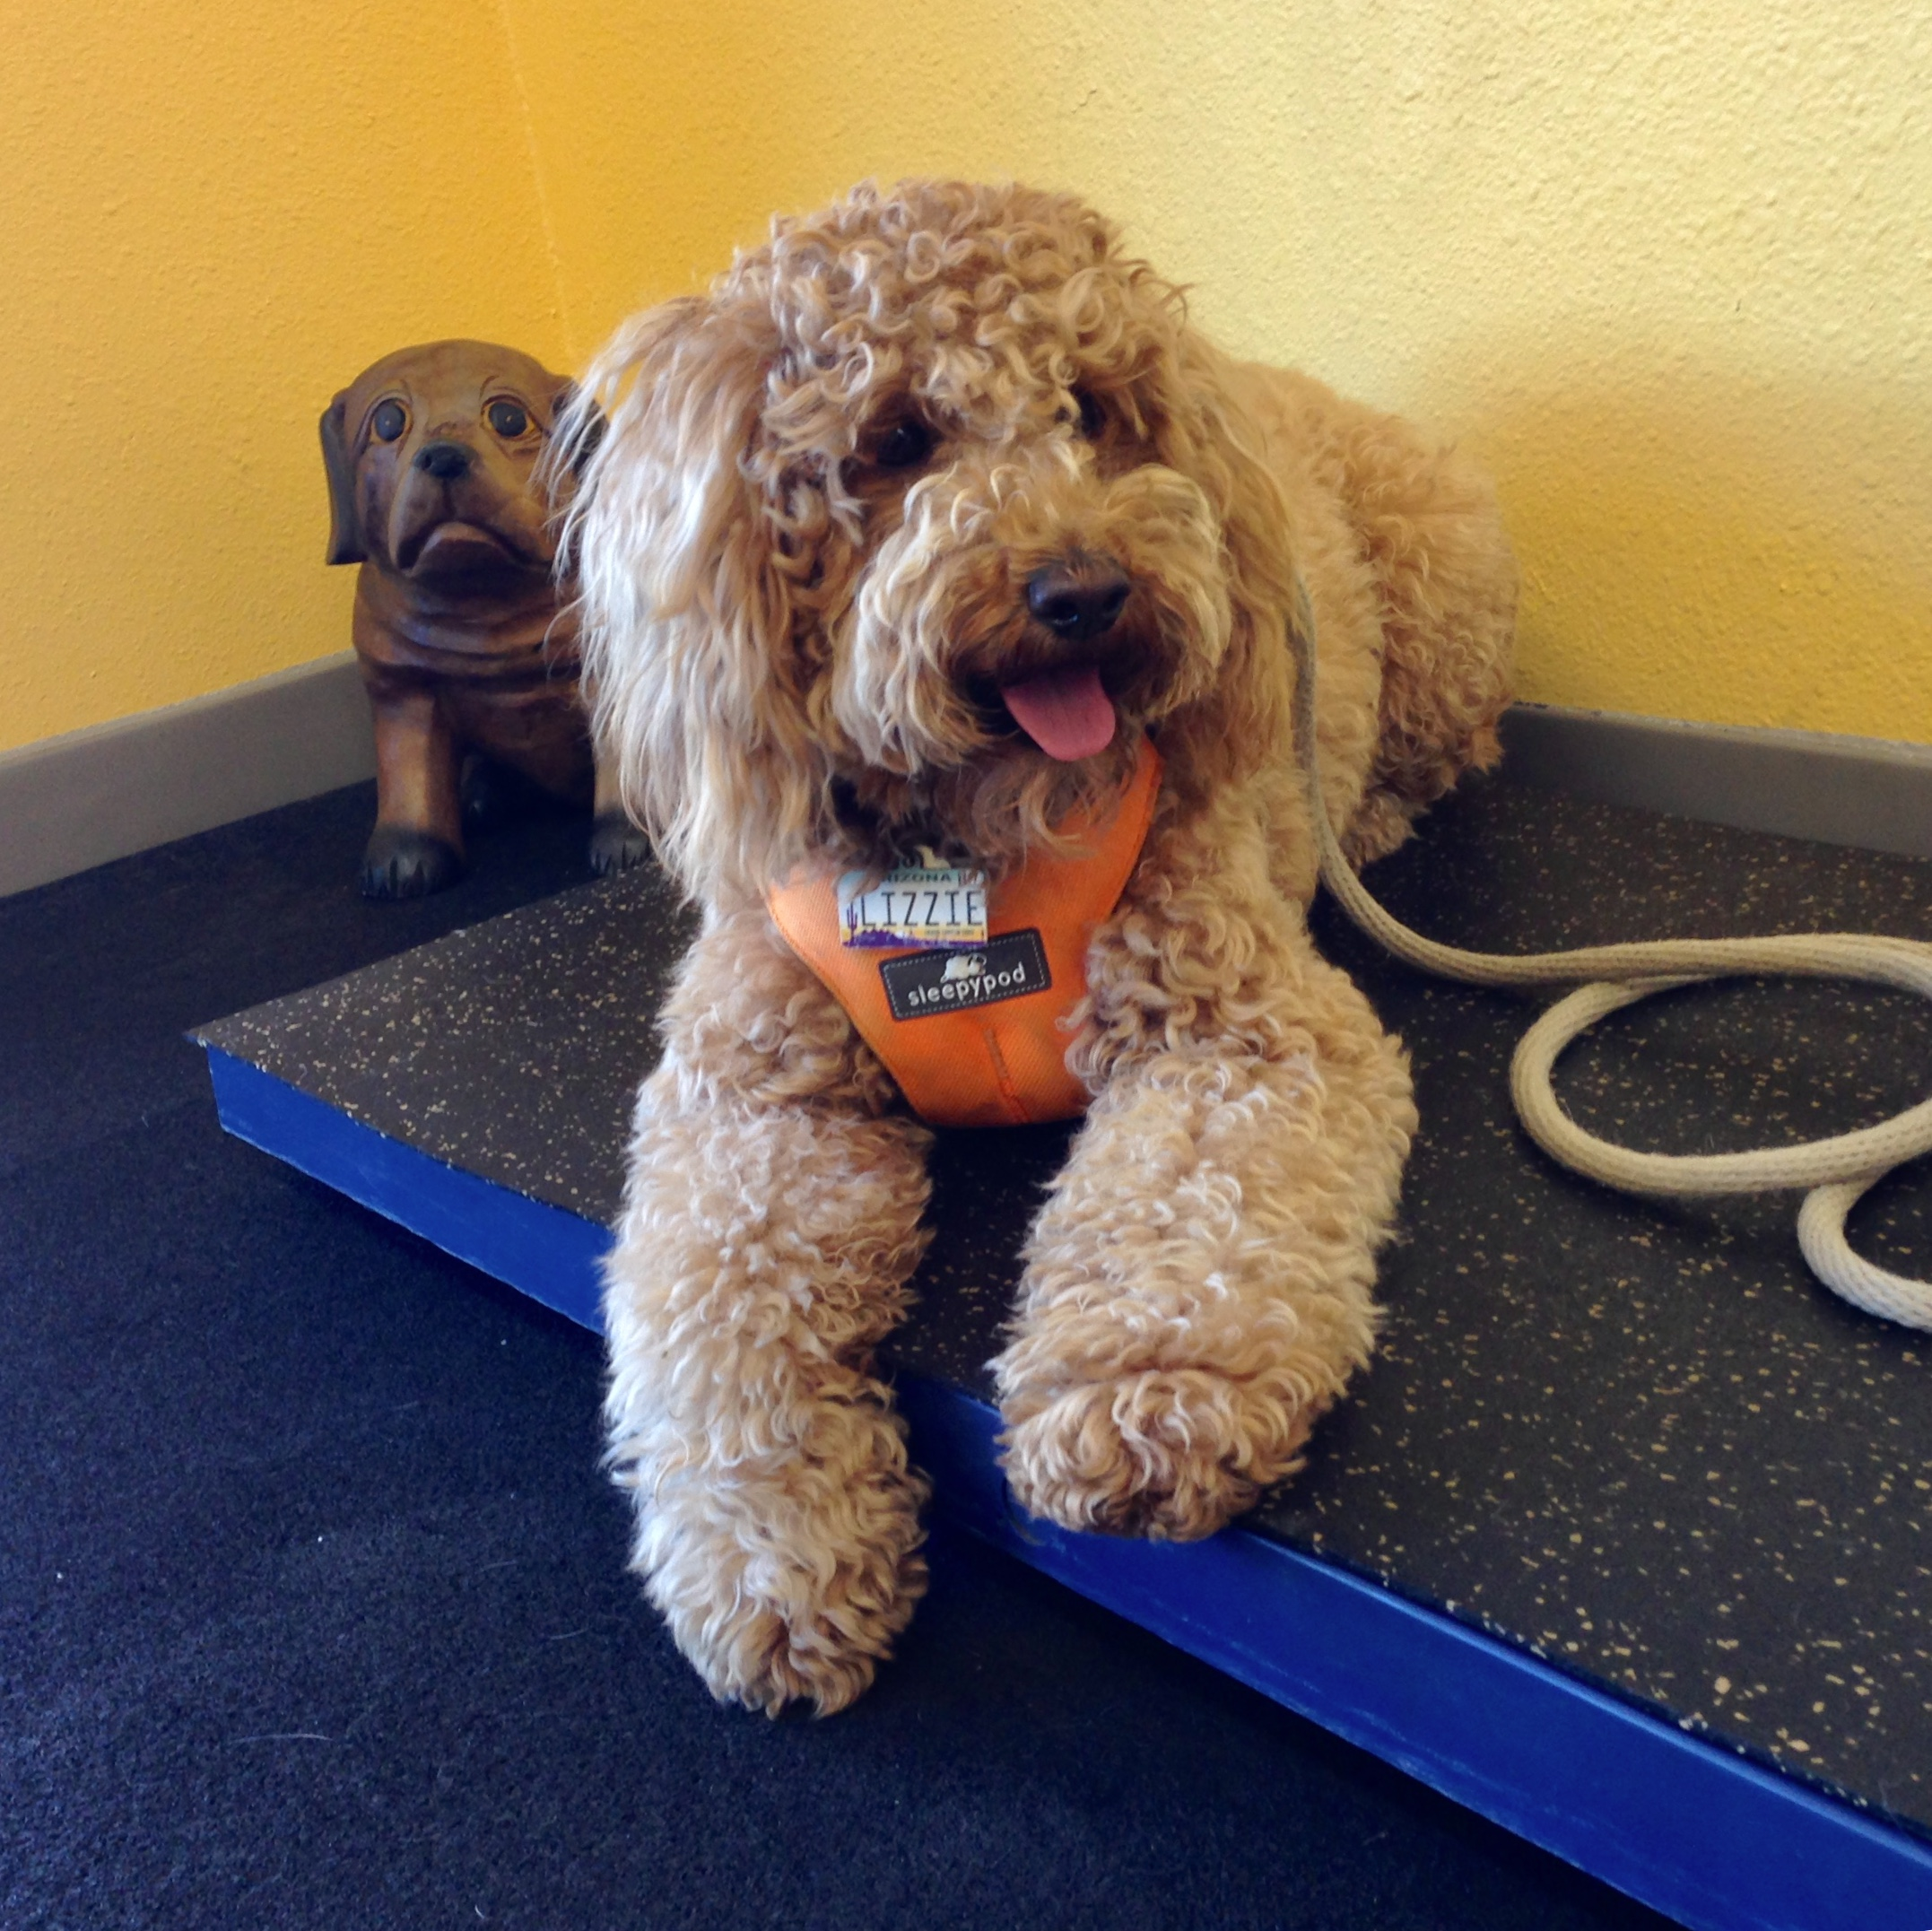 The doggie scale in the lobby of A Loyal Companion helped me track Lizzie's weight over the four-week class. She remained a consistent 20.6 pounds, even on her birthday.